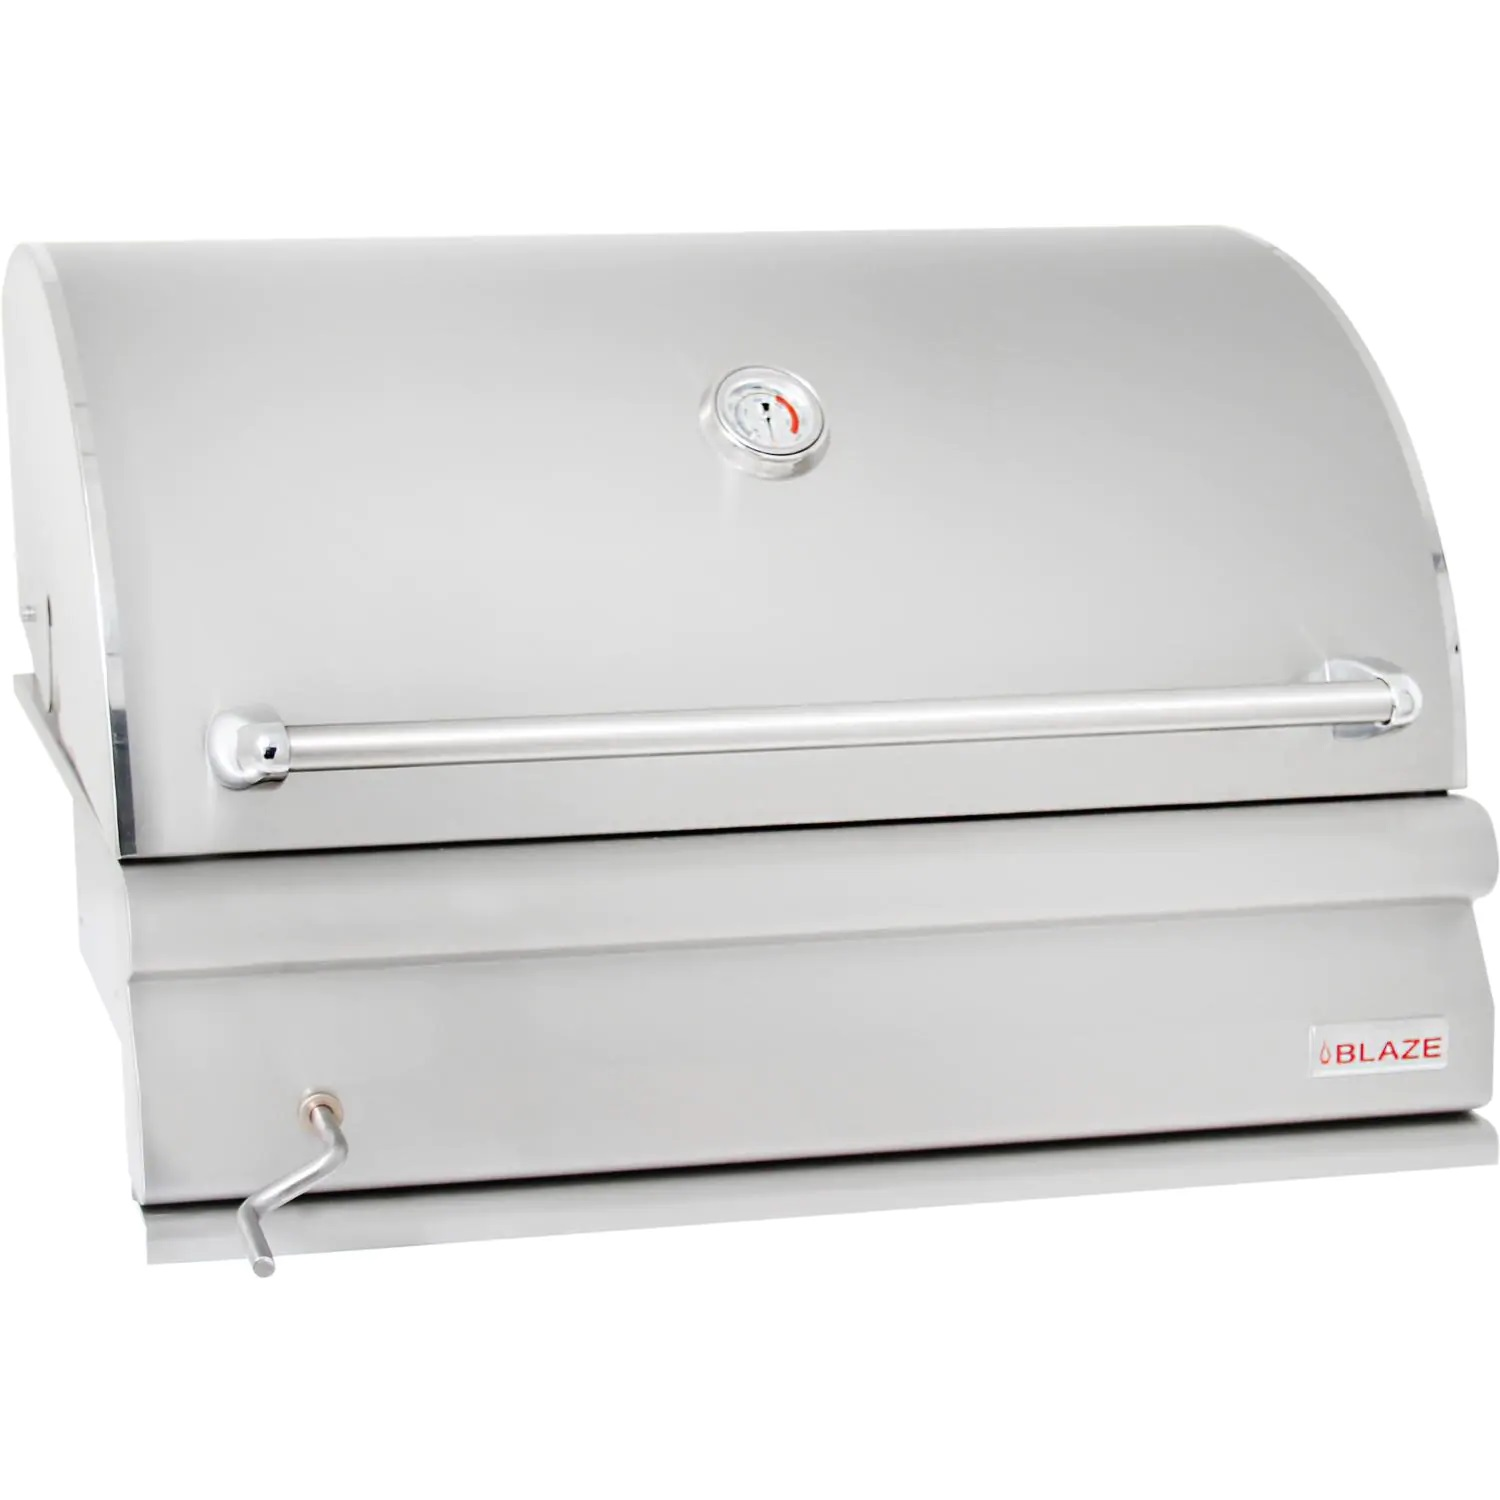 Blaze 32-Inch Built-In Stainless Steel Charcoal Grill - Best Built In Charcoal Grills